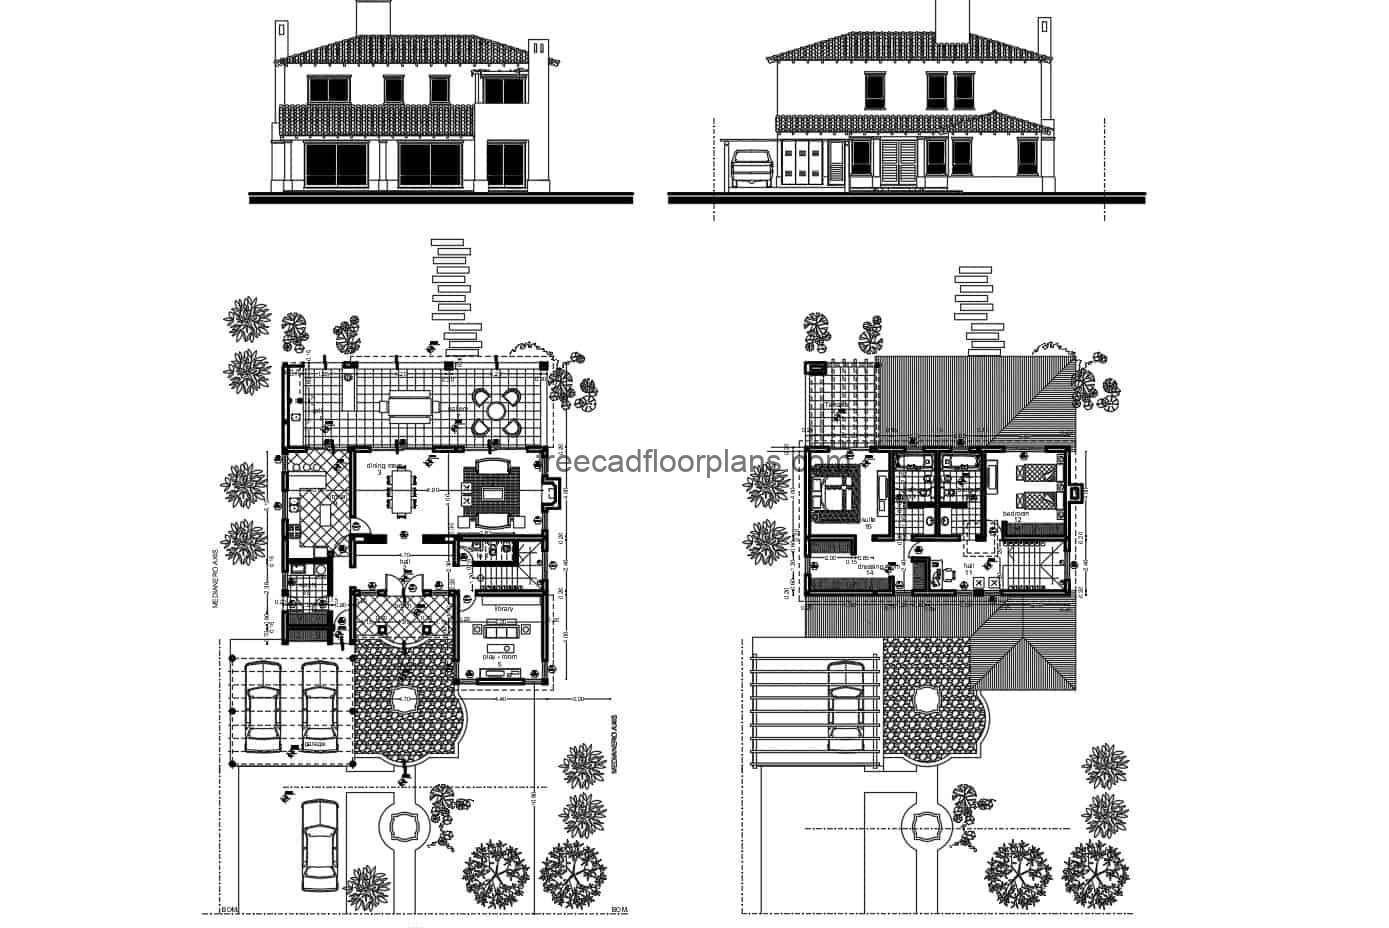 Architectural and dimensional 2D DWG plans including facade, sections and details of a small two-level villa with two bedrooms with separate bathrooms on the second level. First level with living room, kitchen, dining room, library, grill area in the patio. DWG CAD plans for free download.